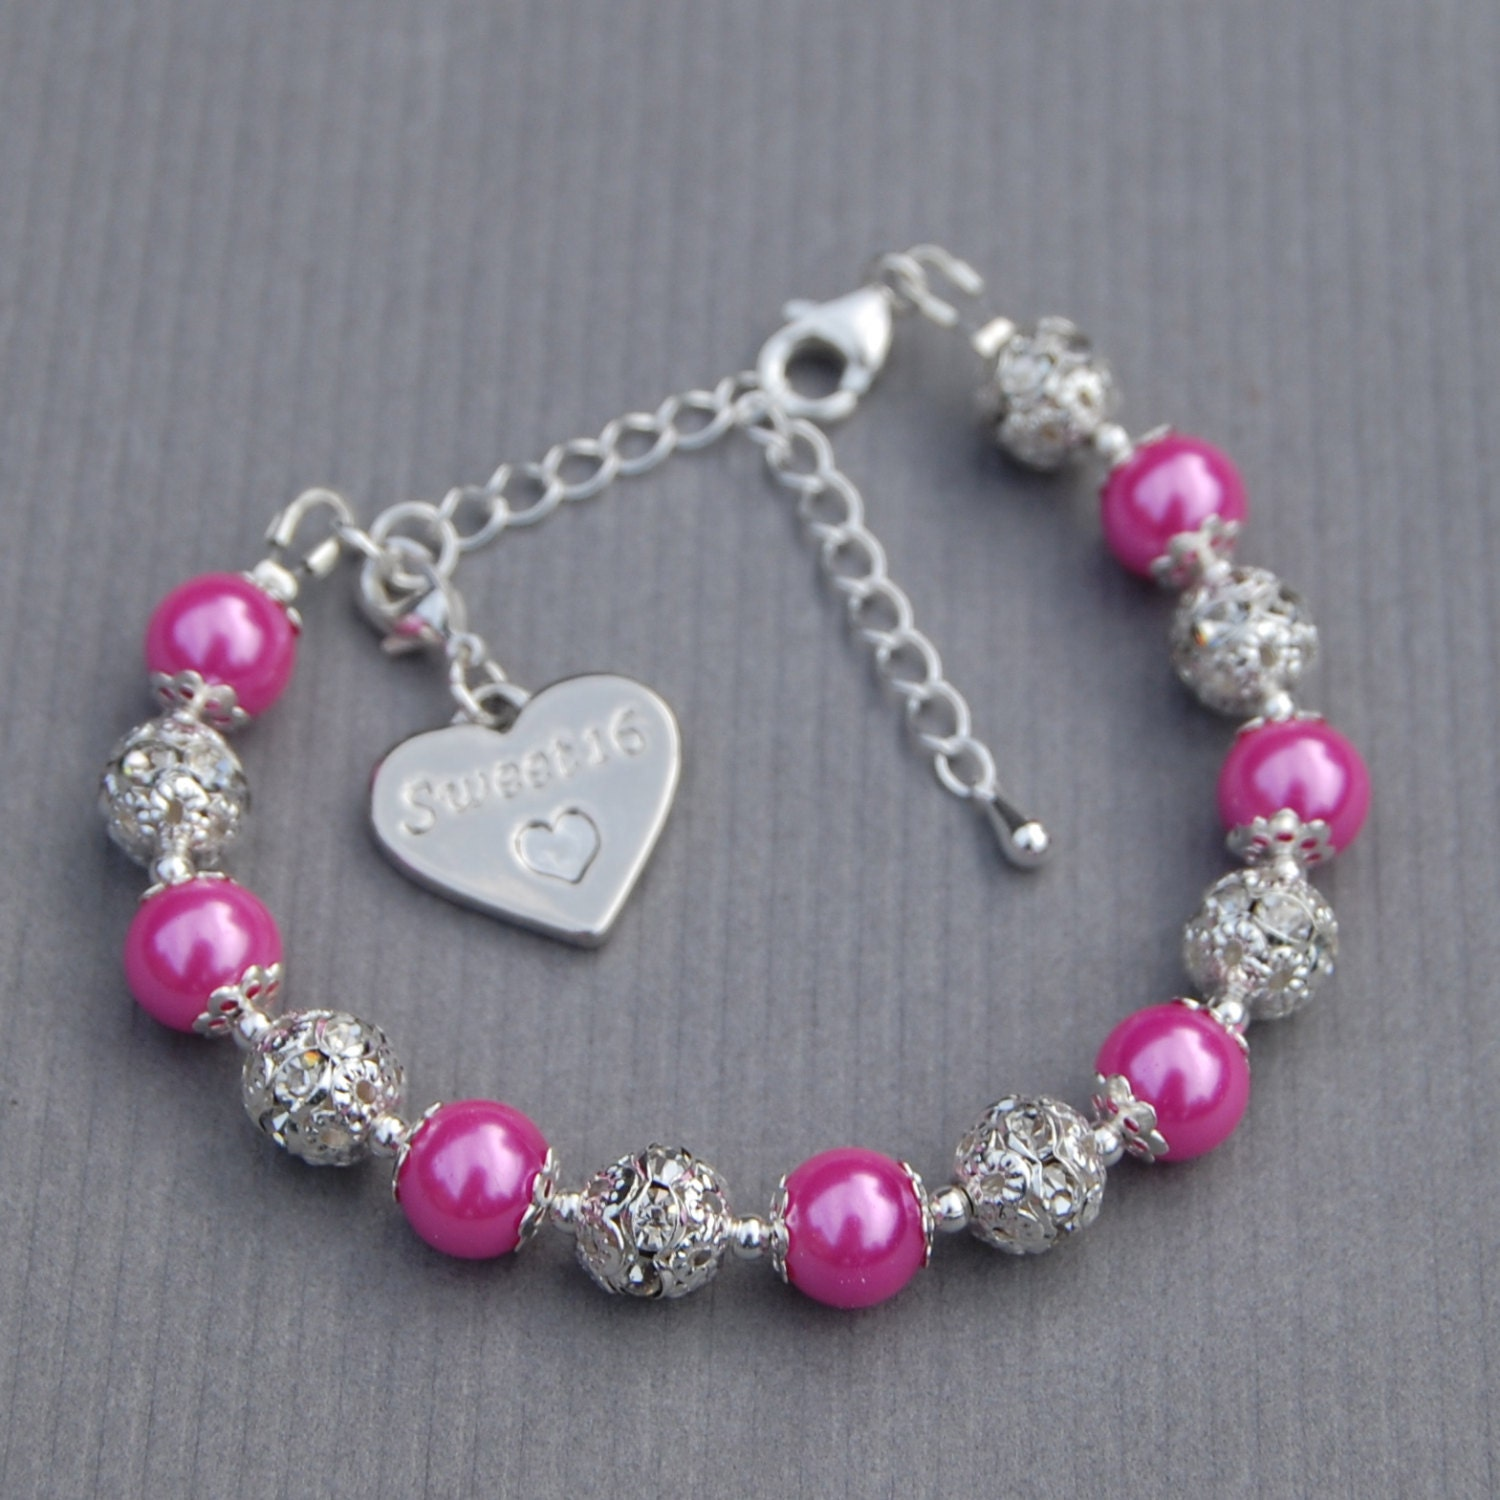 Sweet 16 Jewelry Sweet 16 Gift 16th Birthday Charm Bracelet